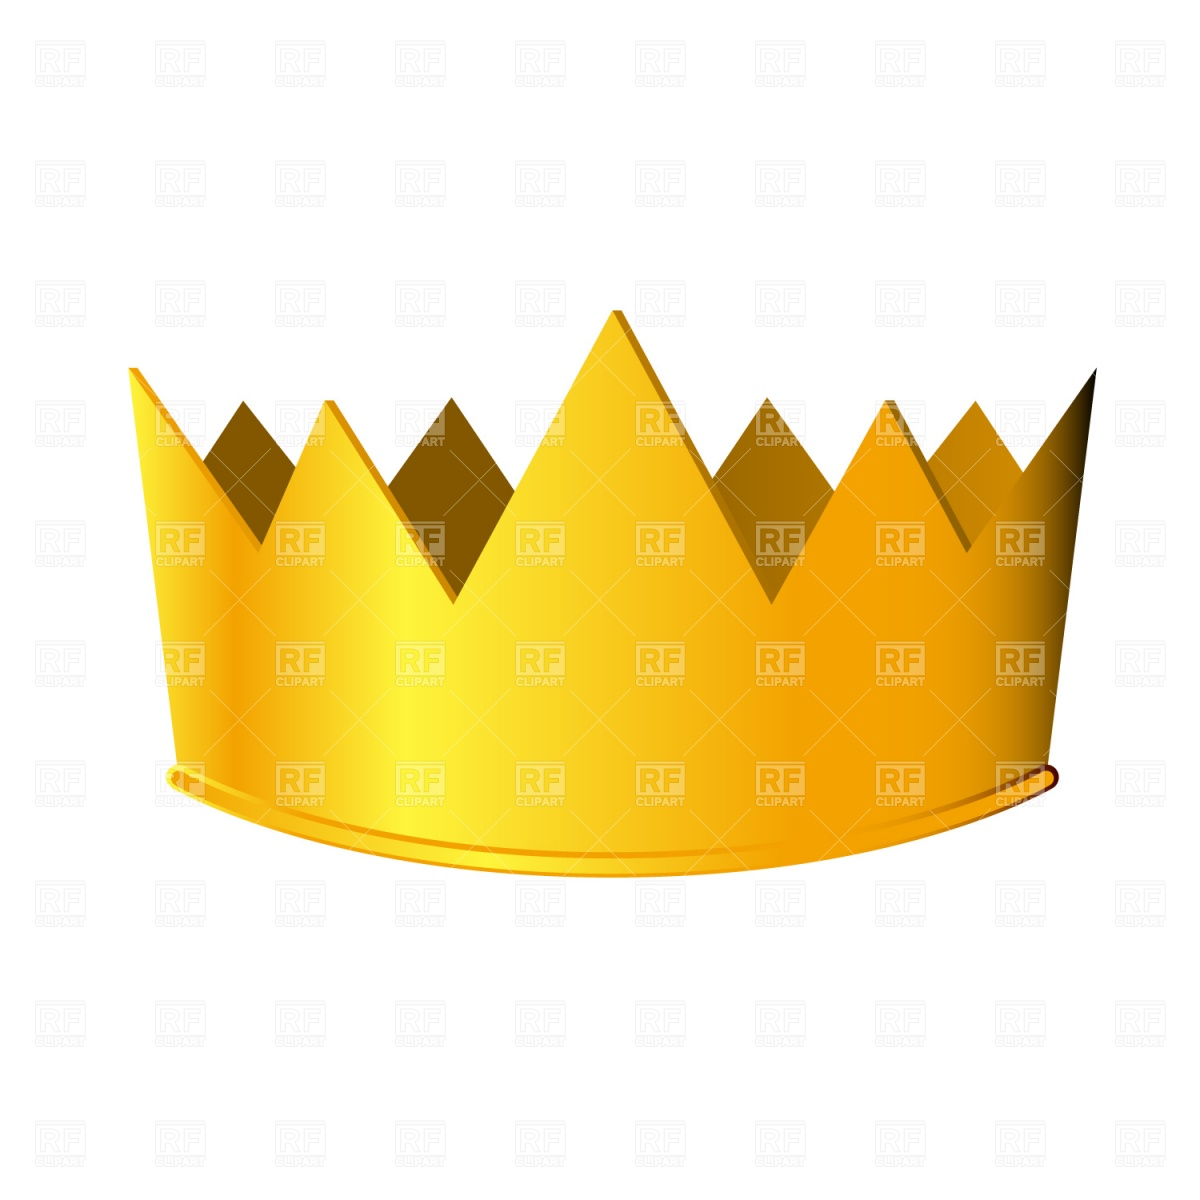 crown silhouette free vector at getdrawings com free for personal rh getdrawings com free crown clipart images princess crown clipart free